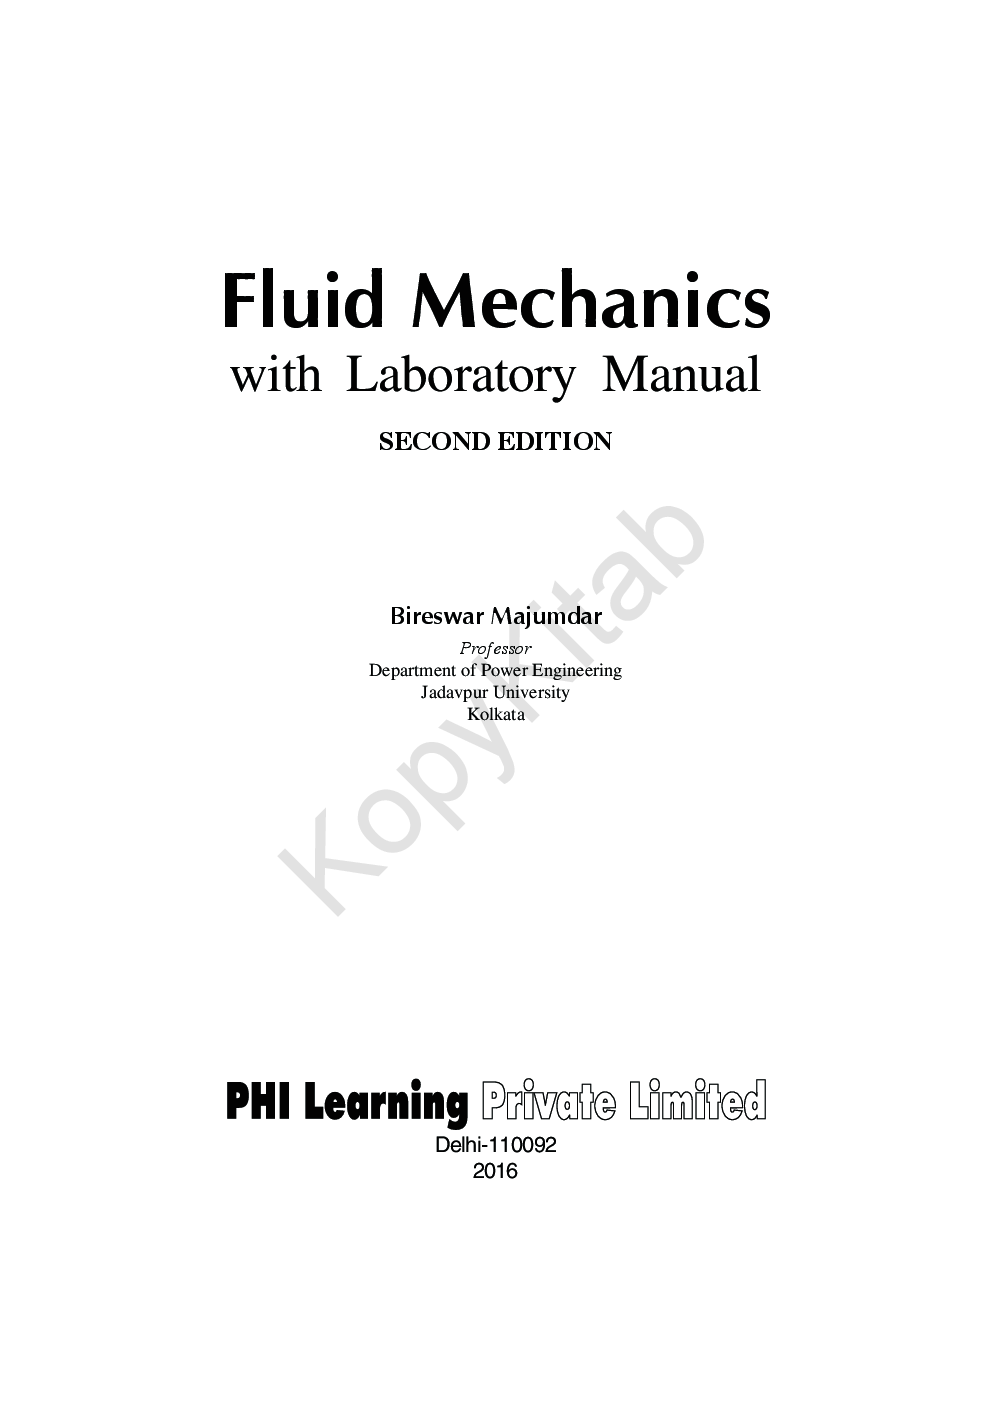 Download Fluid Mechanics With Laboratory Manual by